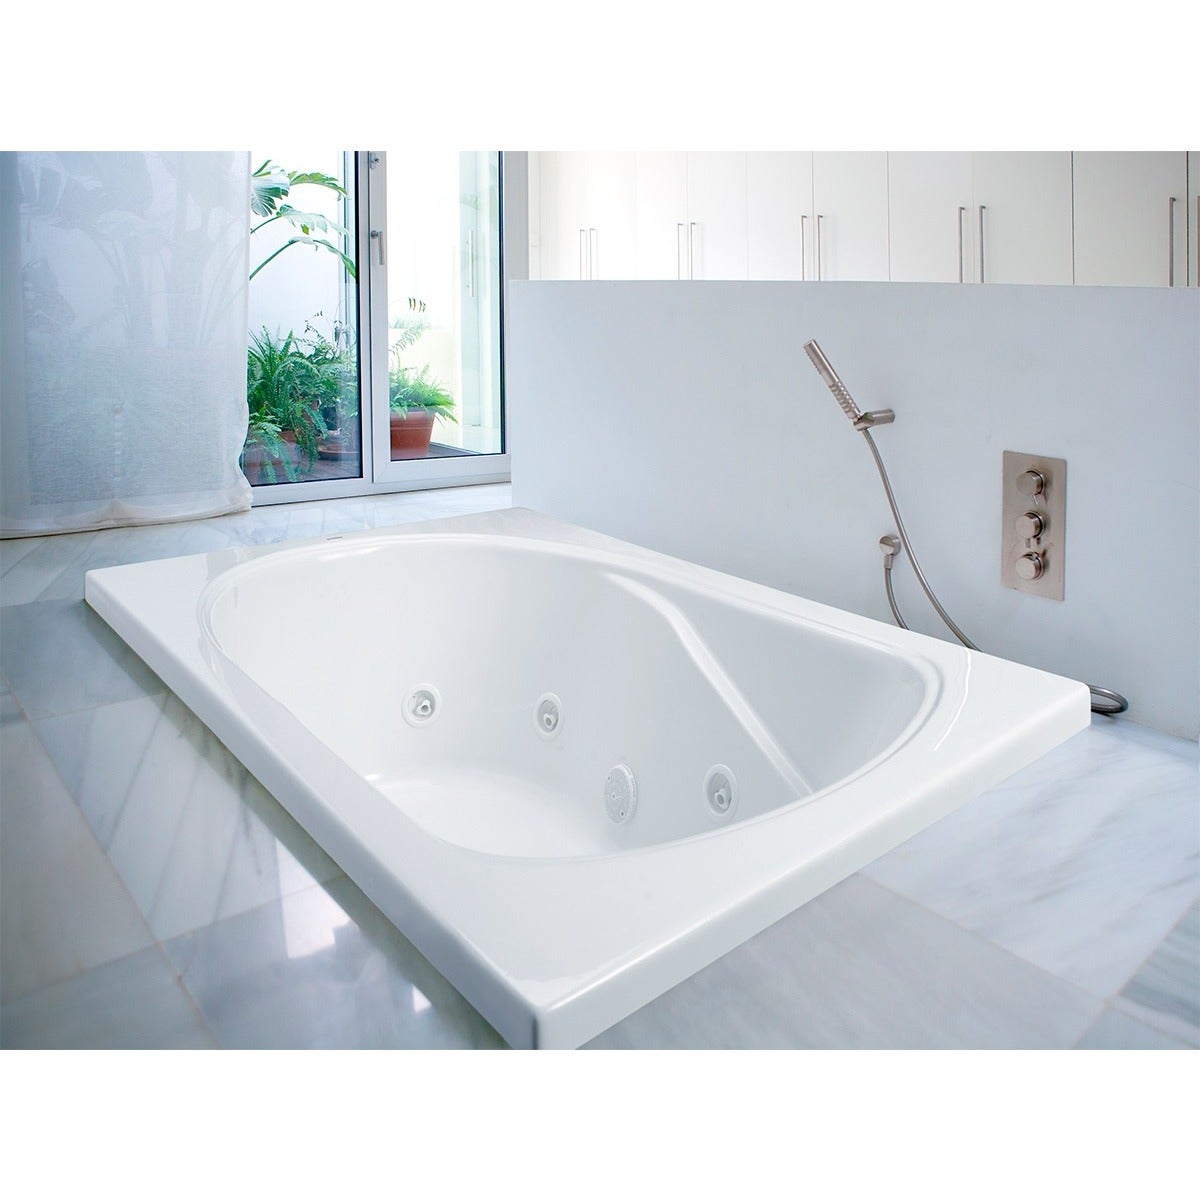 Shop Clarke Products W3660-01CMH Sculptura III Drop-in Whirlpool Tub ...